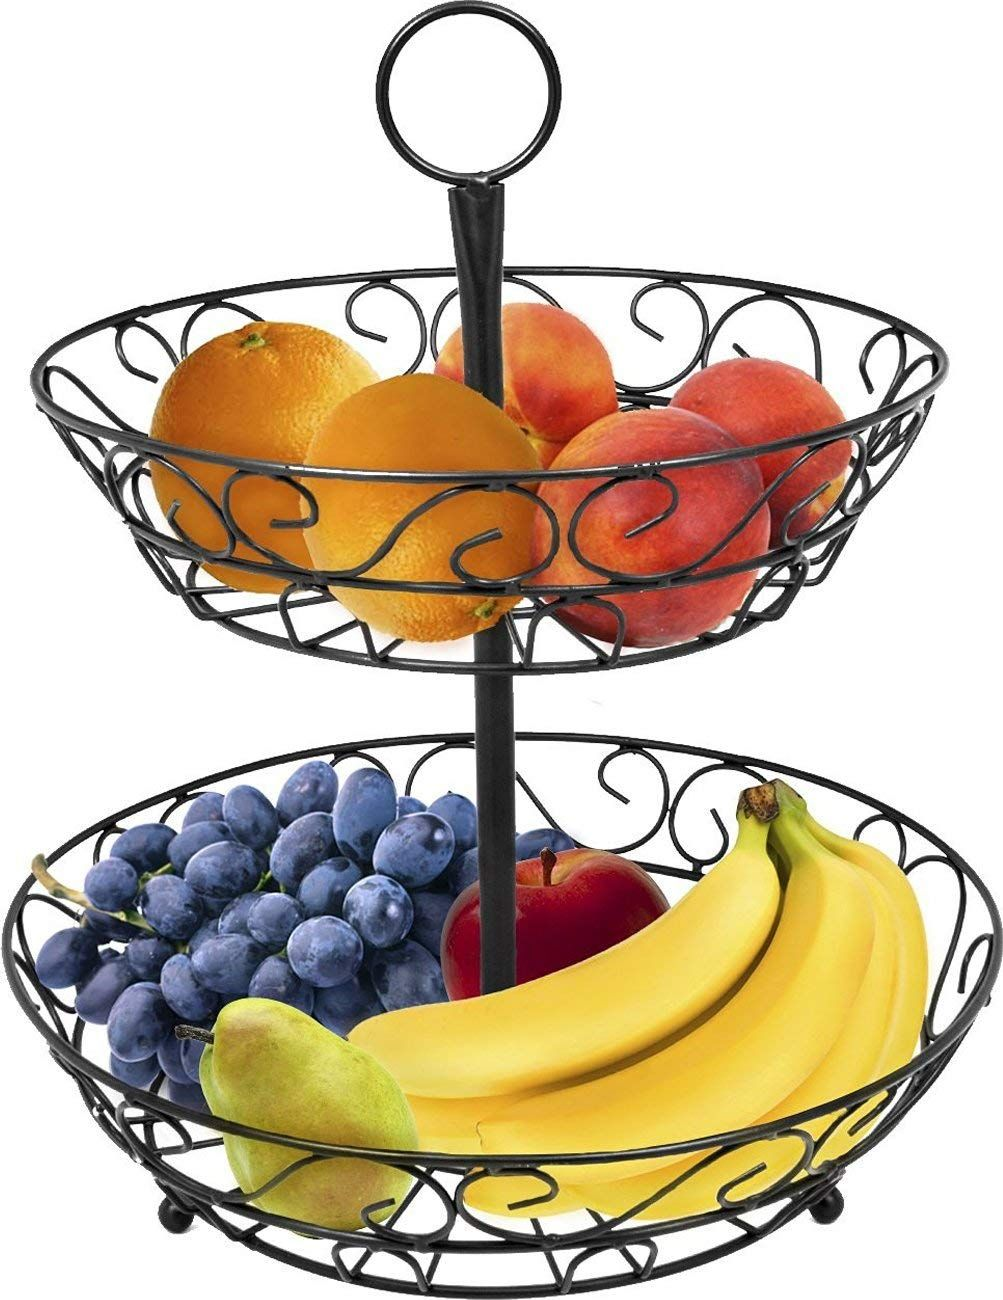 2-Tier Countertop Fruit Basket Holder & Decorative Bowl Stand Basket Perfect for Fruit, Vegetables, Snacks, Household Items